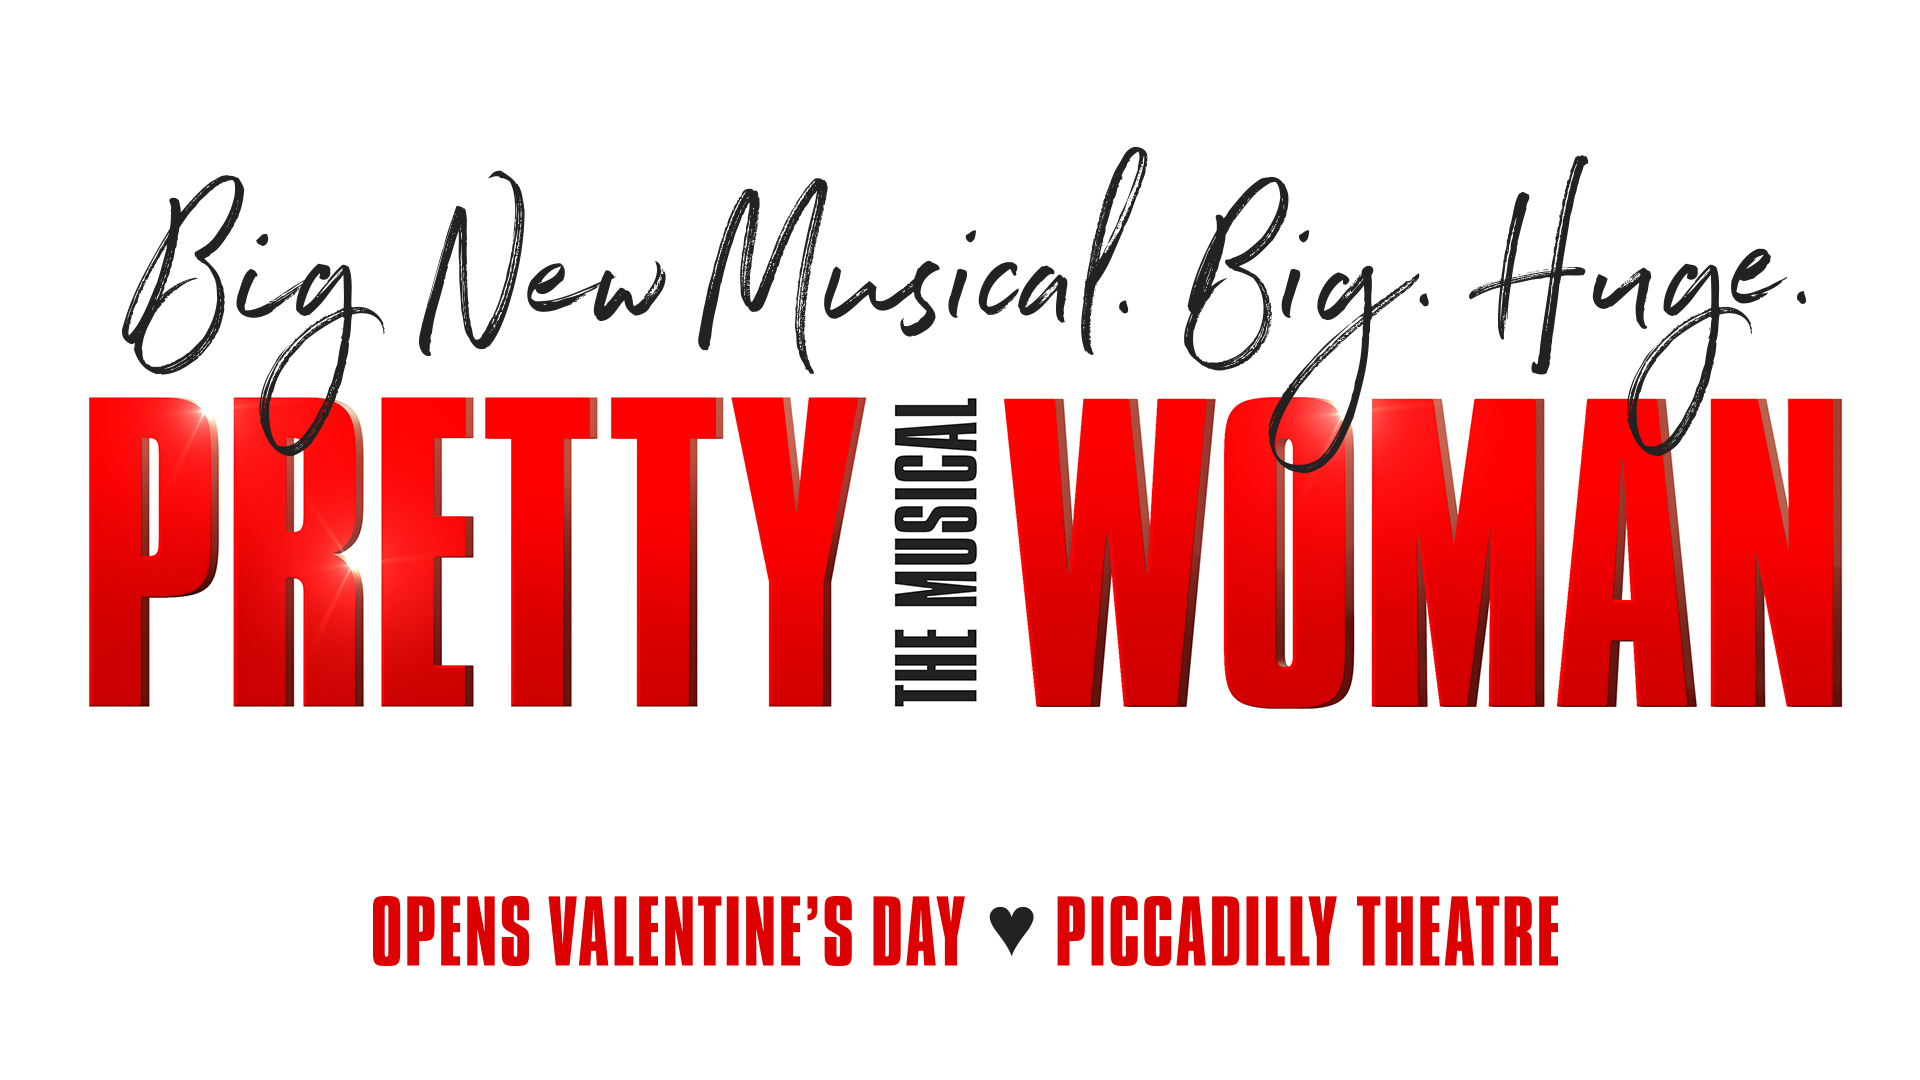 Pretty Woman: The Musical, at Piccadilly Theatre